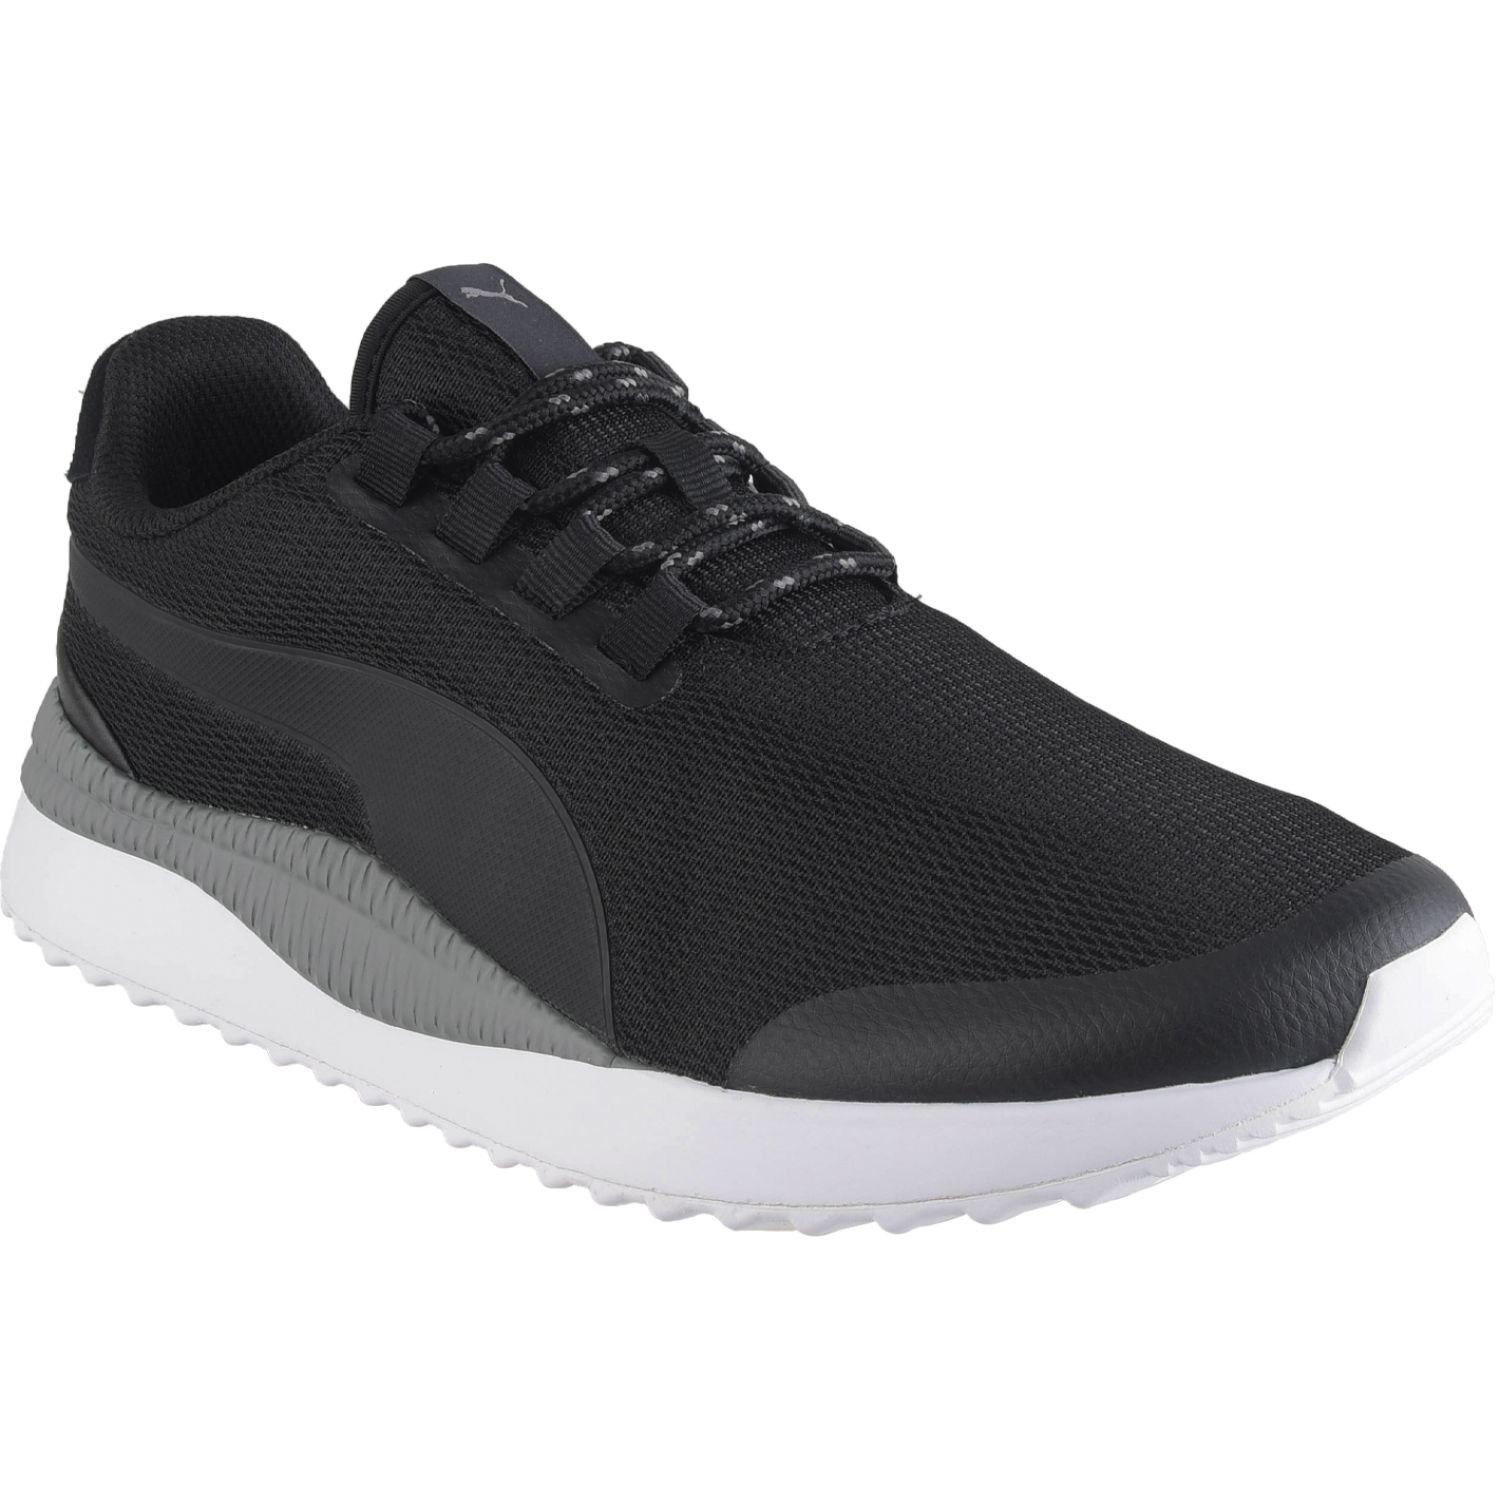 Puma pacer next fs Negro / plomo Walking